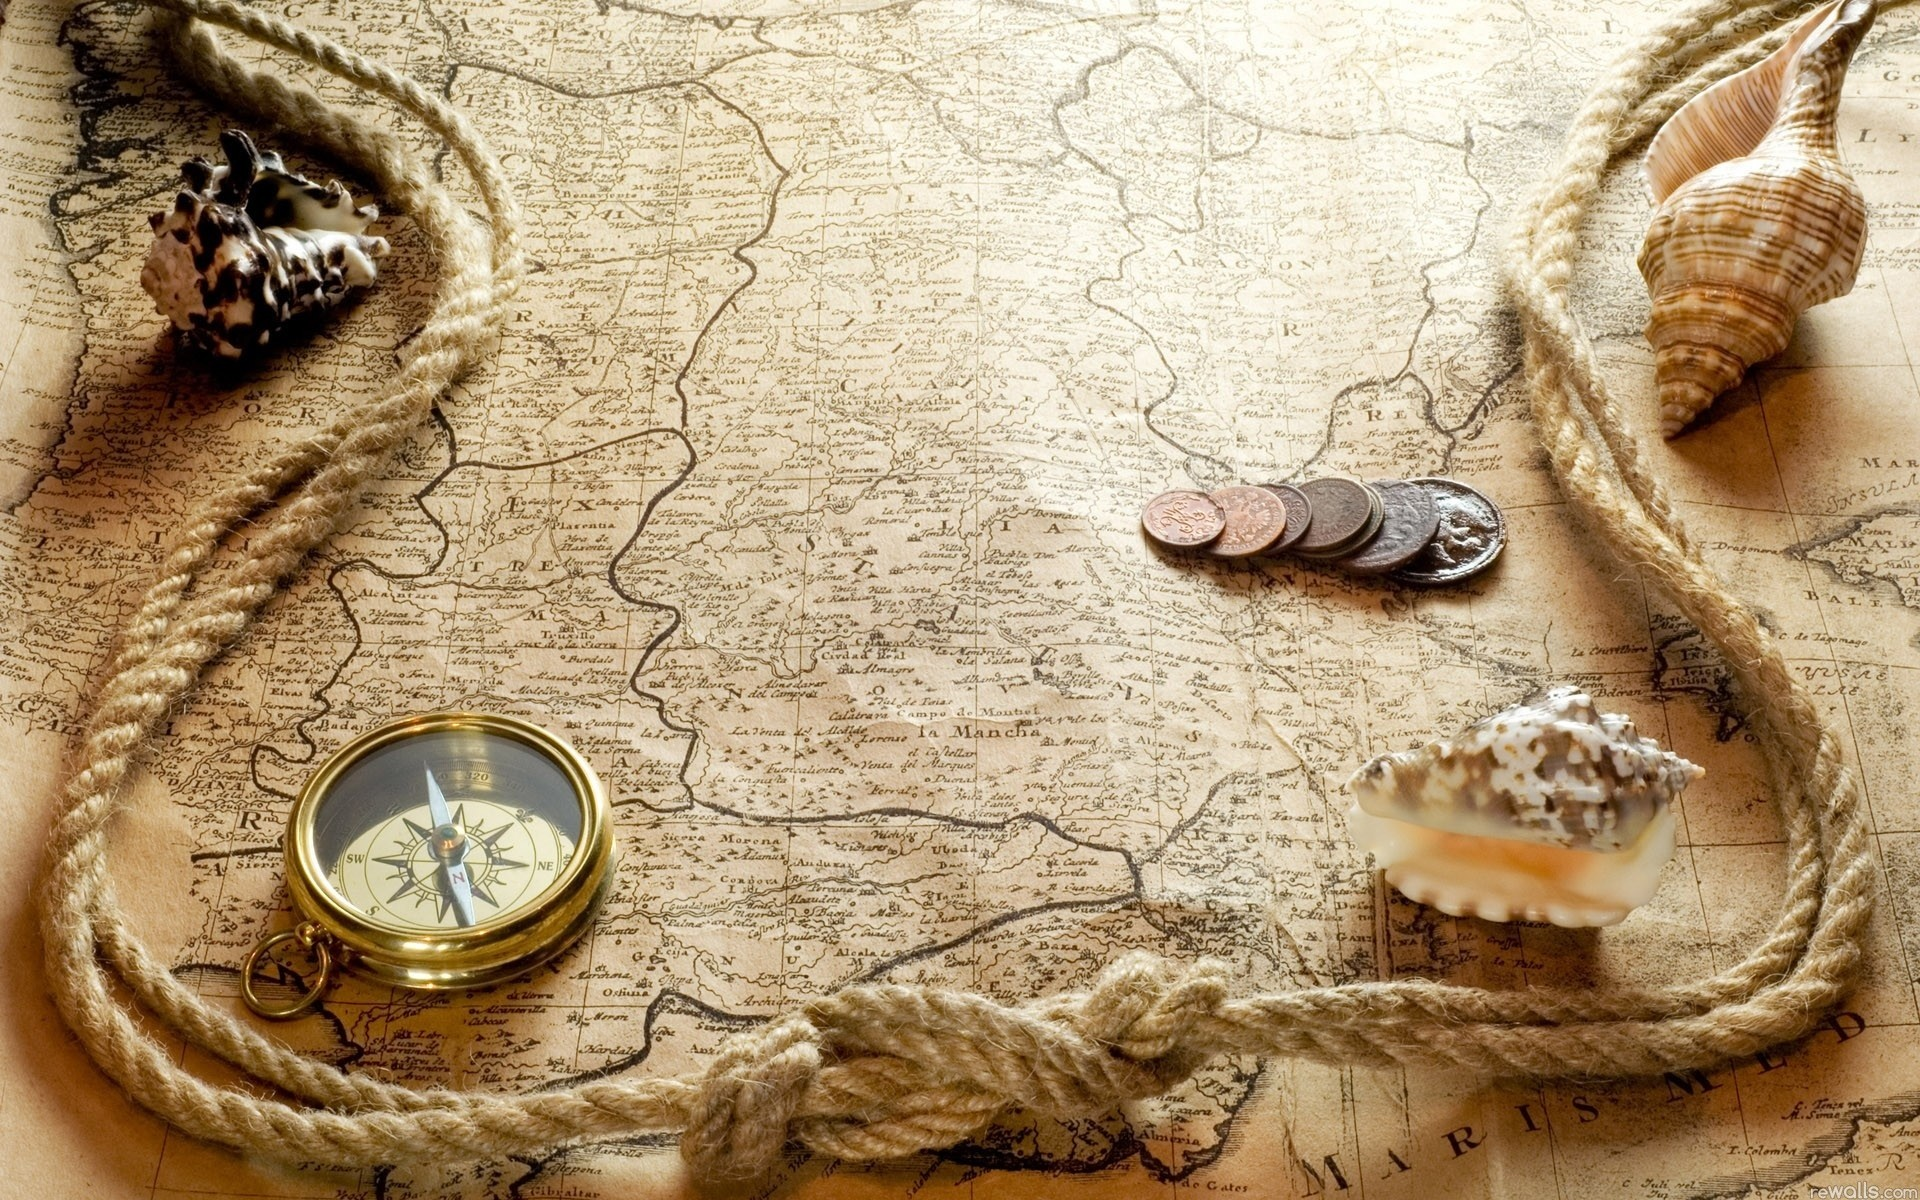 Res: 1920x1200, Compass with Old Map Wallpaper iPhone Wallpaper